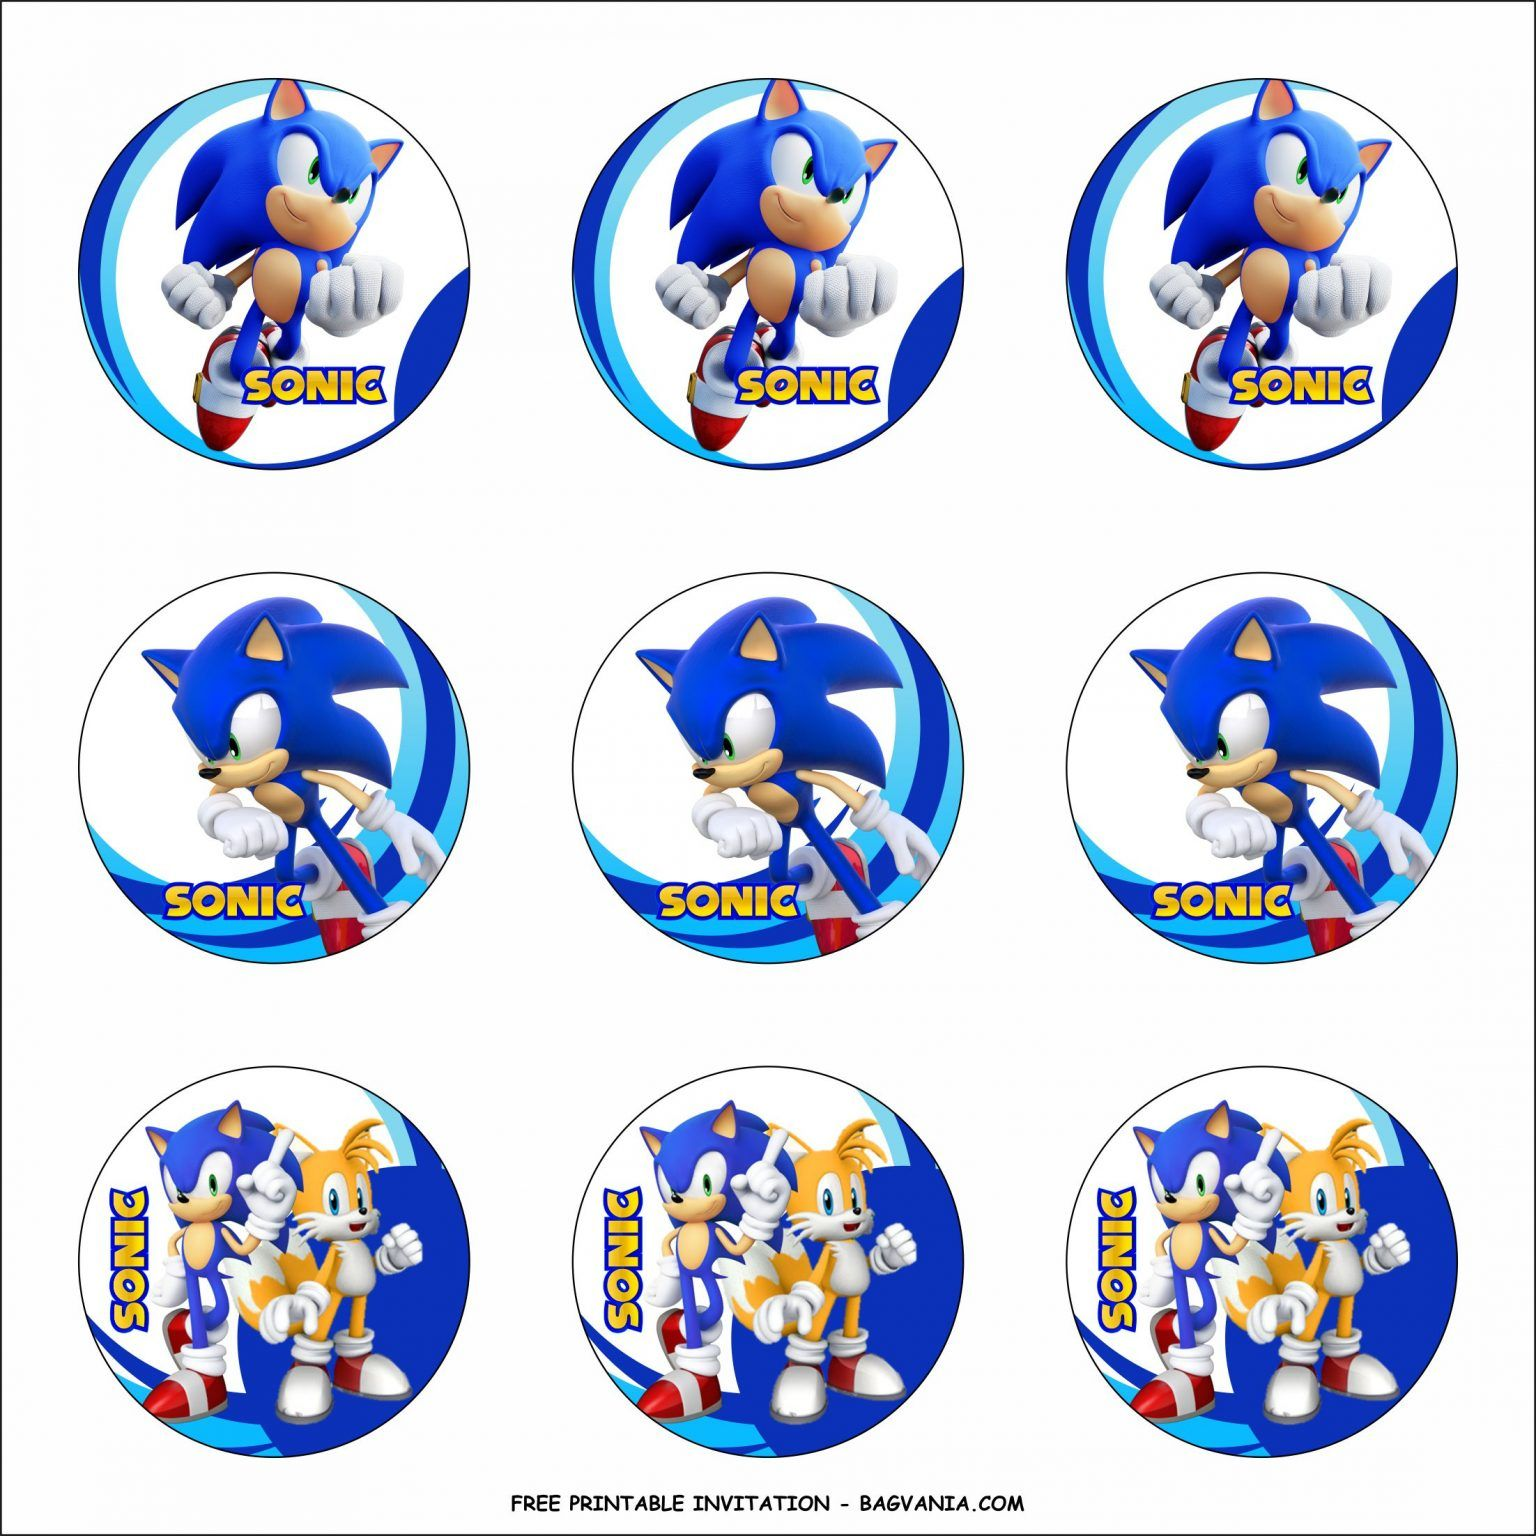 Free Printable Sonic The Hedgehog Birthday Party Kits Template In 2020 Hedgehog Birthday Sonic Birthday Parties Sonic Birthday